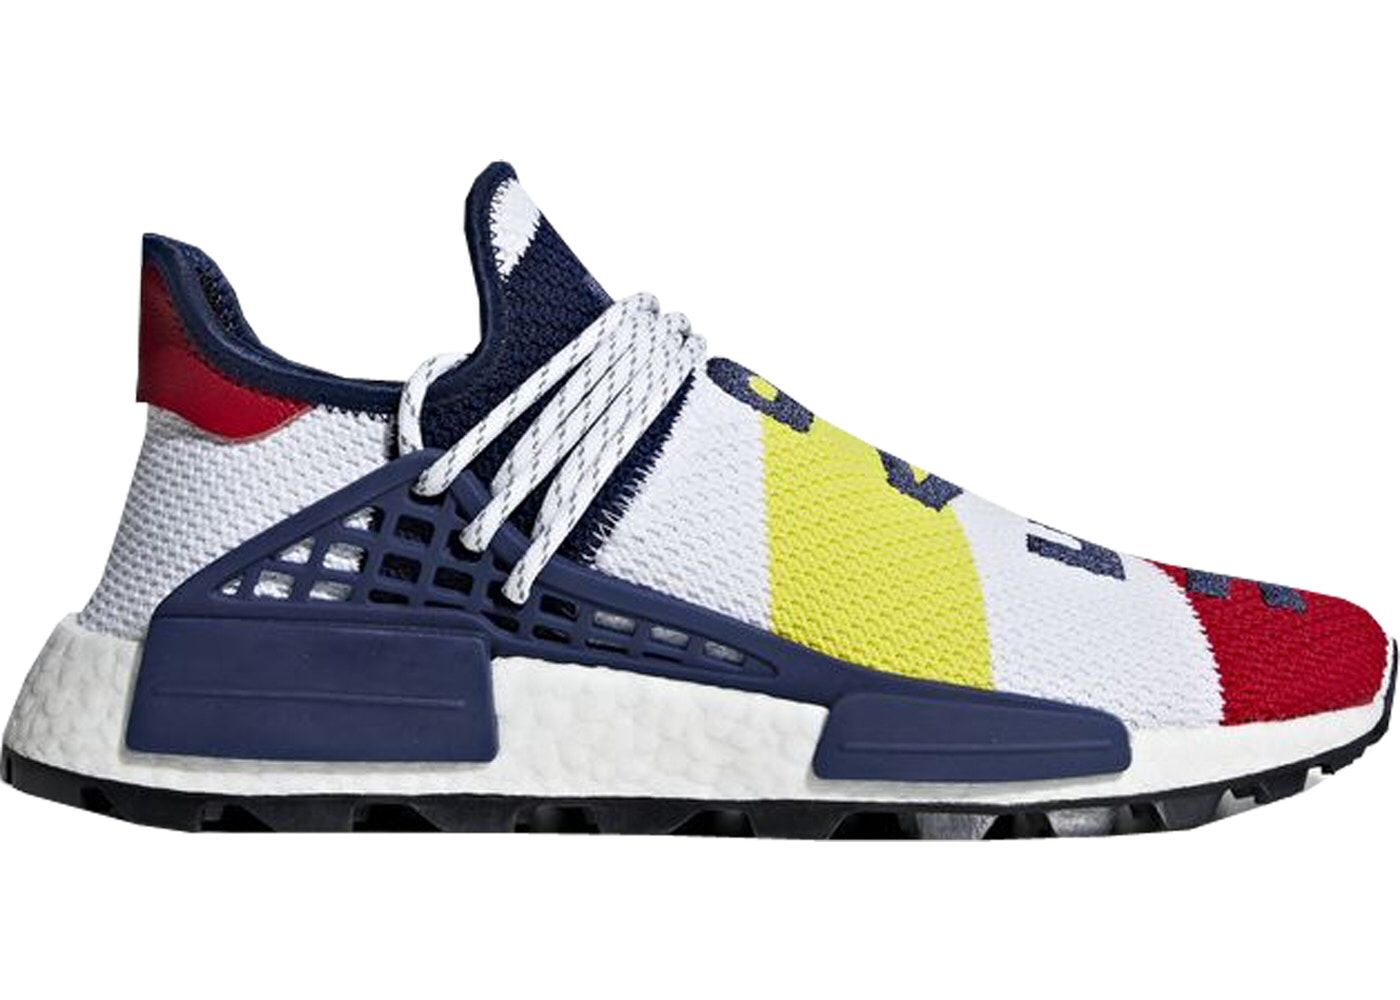 on sale 54e8a cd06b Check out the adidas NMD Hu Pharrell x Billionaire Boys Club ...